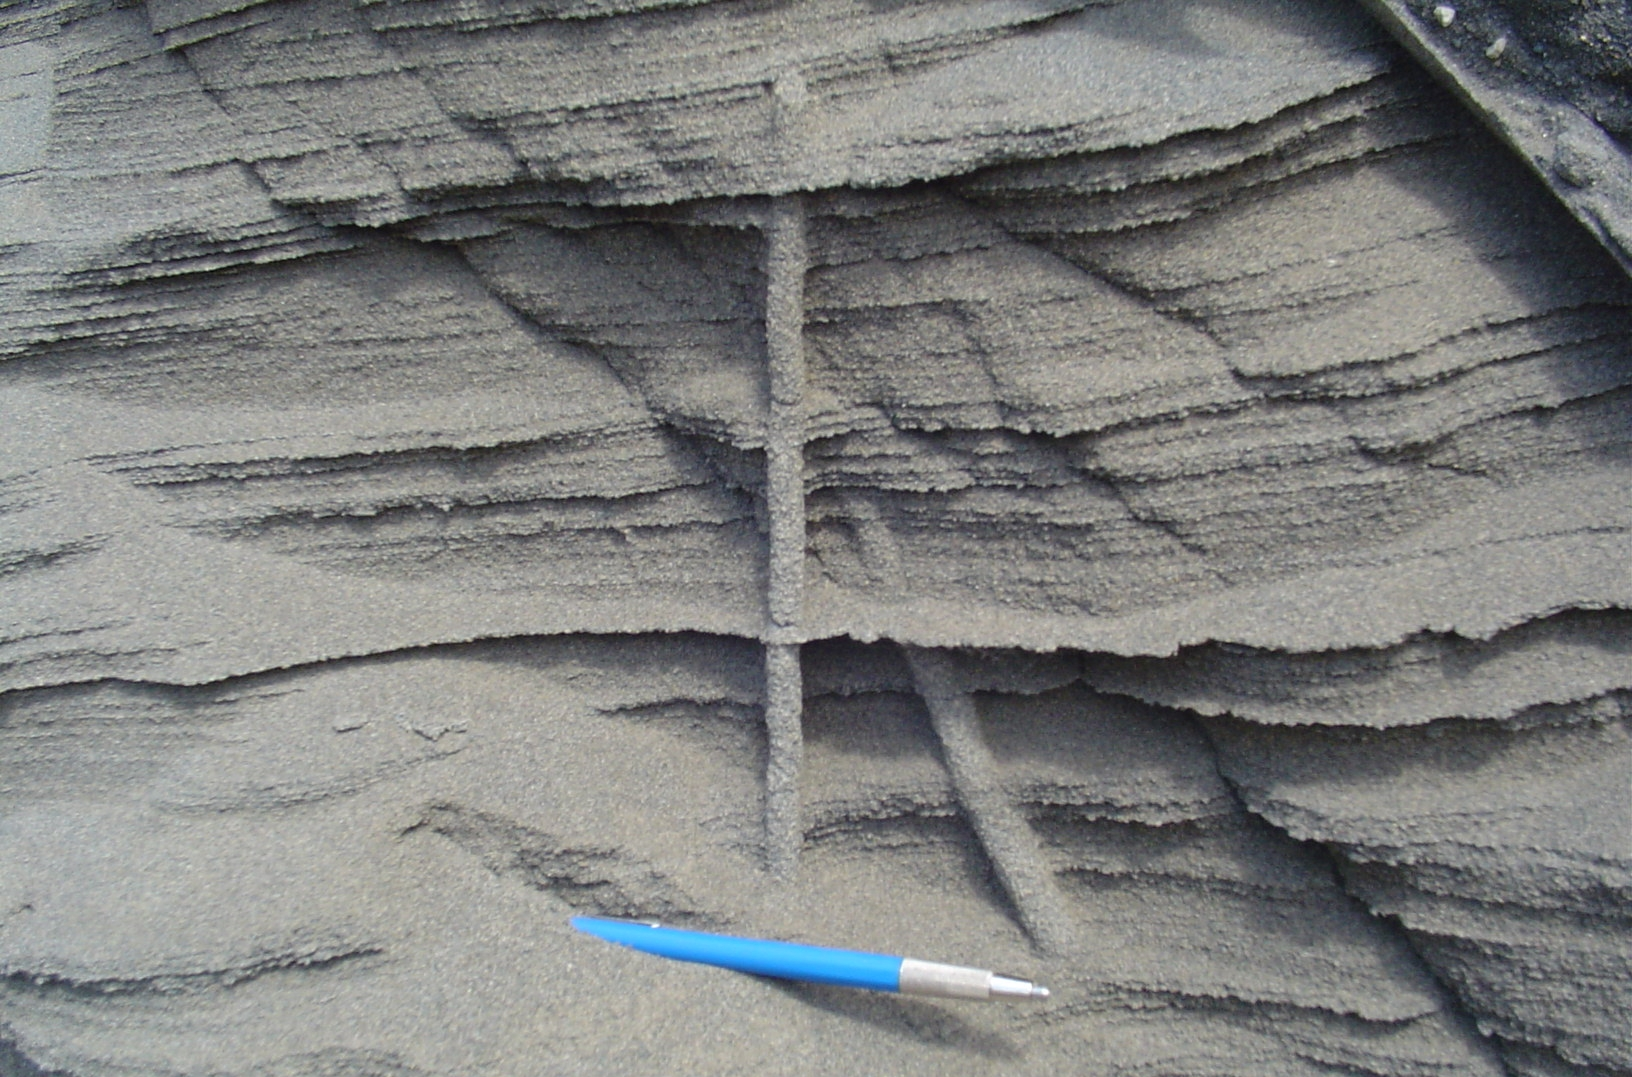 Geología costera - Coastal geology